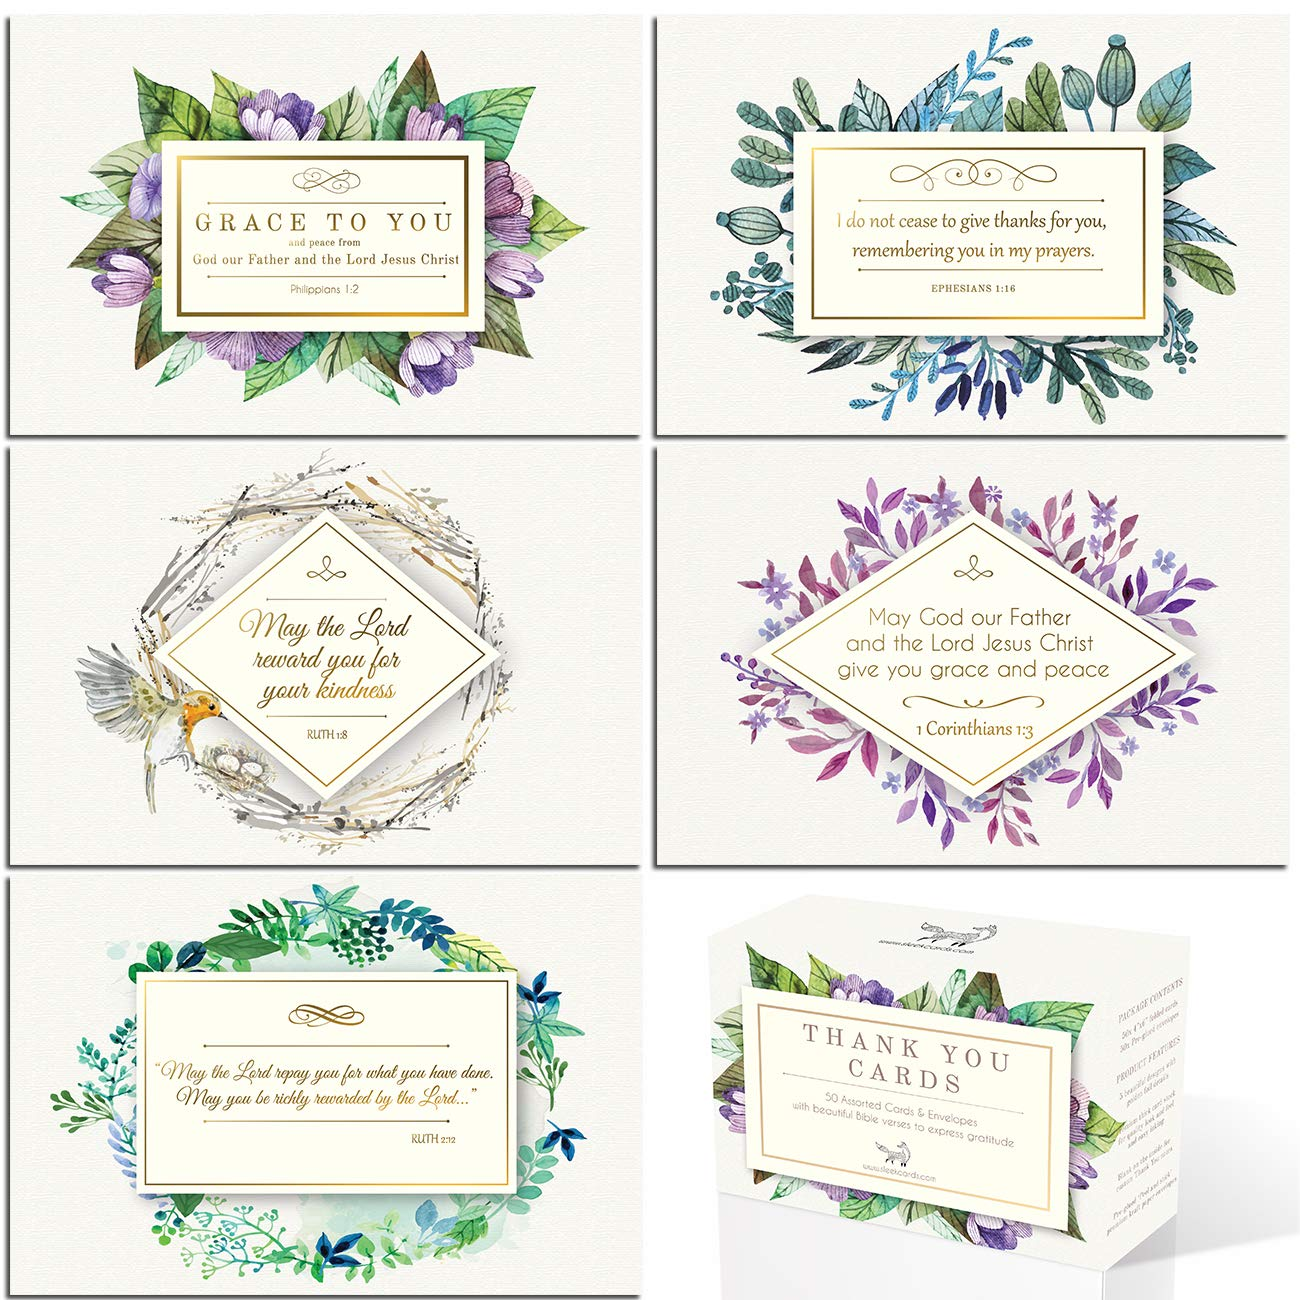 Gold foil Christian Thank You Cards with bible verses | 50 assorted 4x6 Inspirational Note Cards | Boxed Bulk ideal for Communion and Wedding | Religious Spiritual Scripture